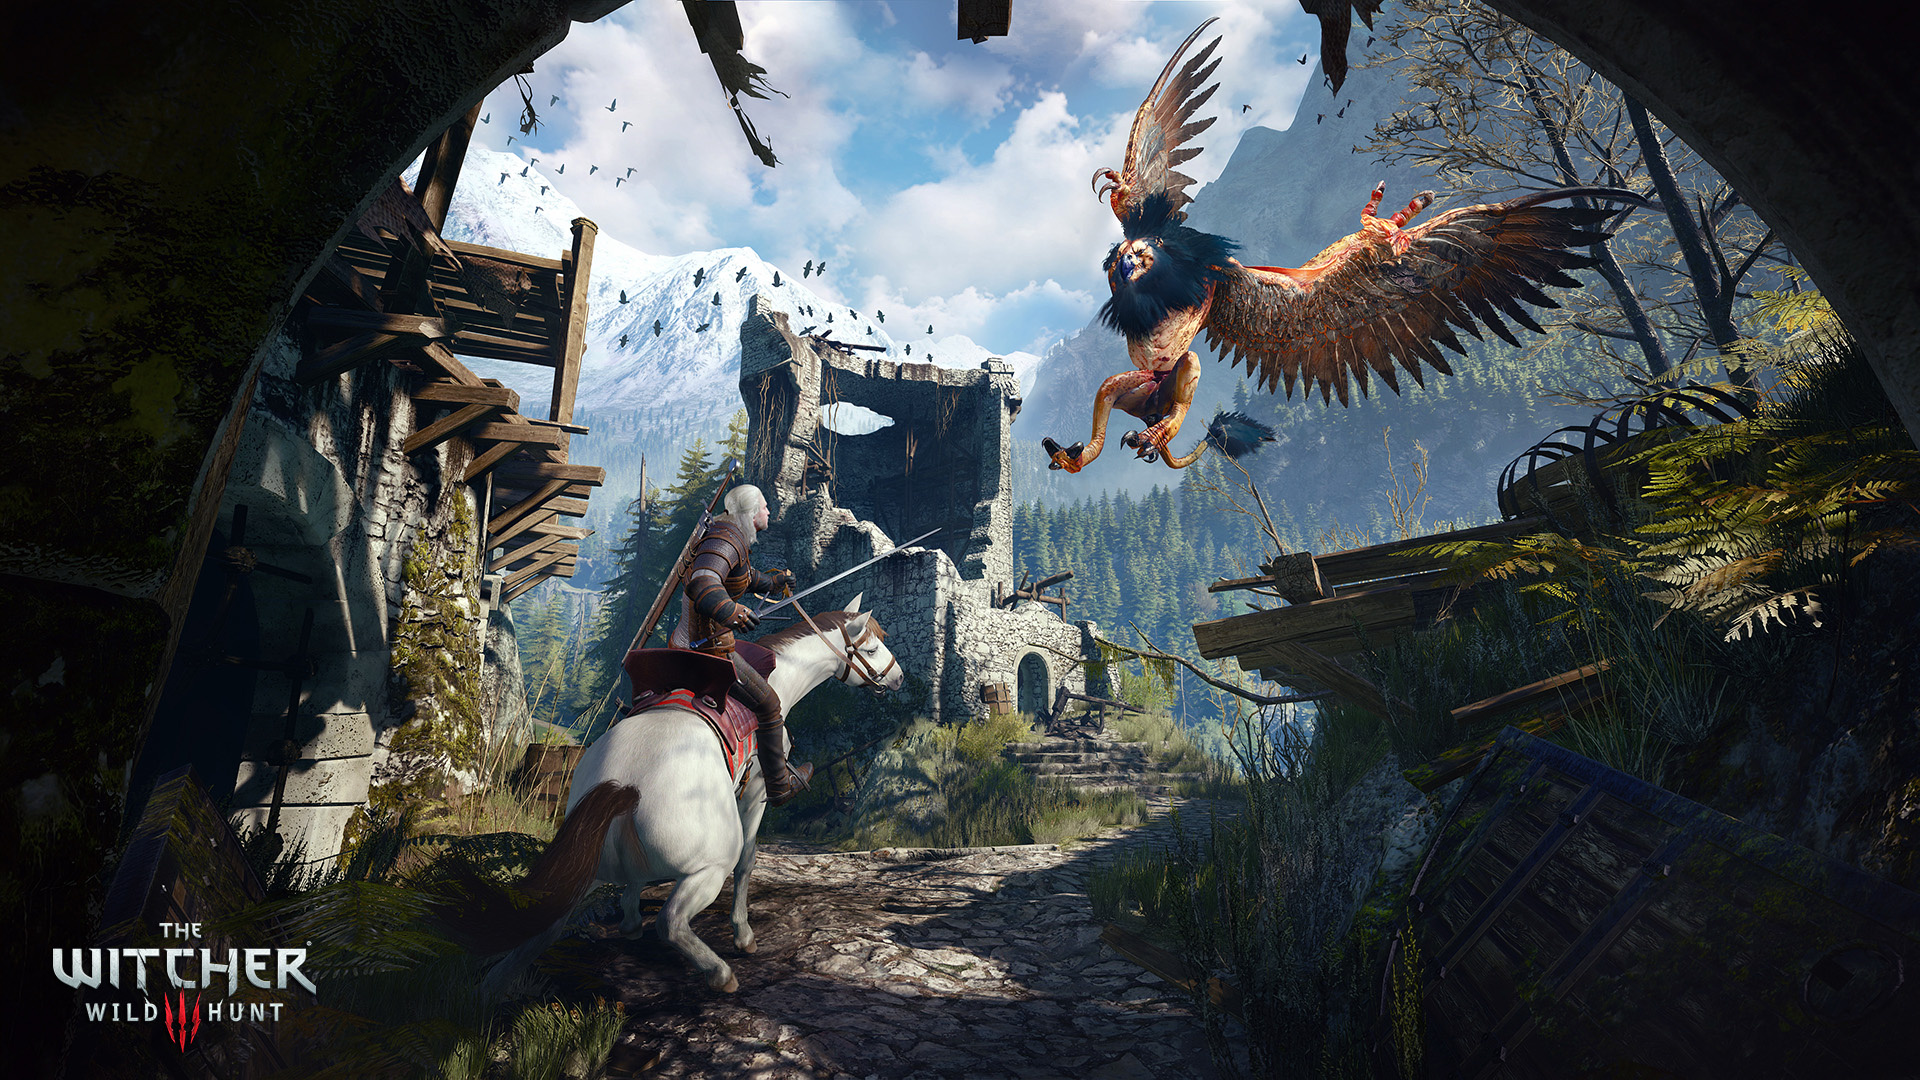 The Witcher 3 Dev CD Projekt Red Hates Fetch Quests Just as Much as You Do